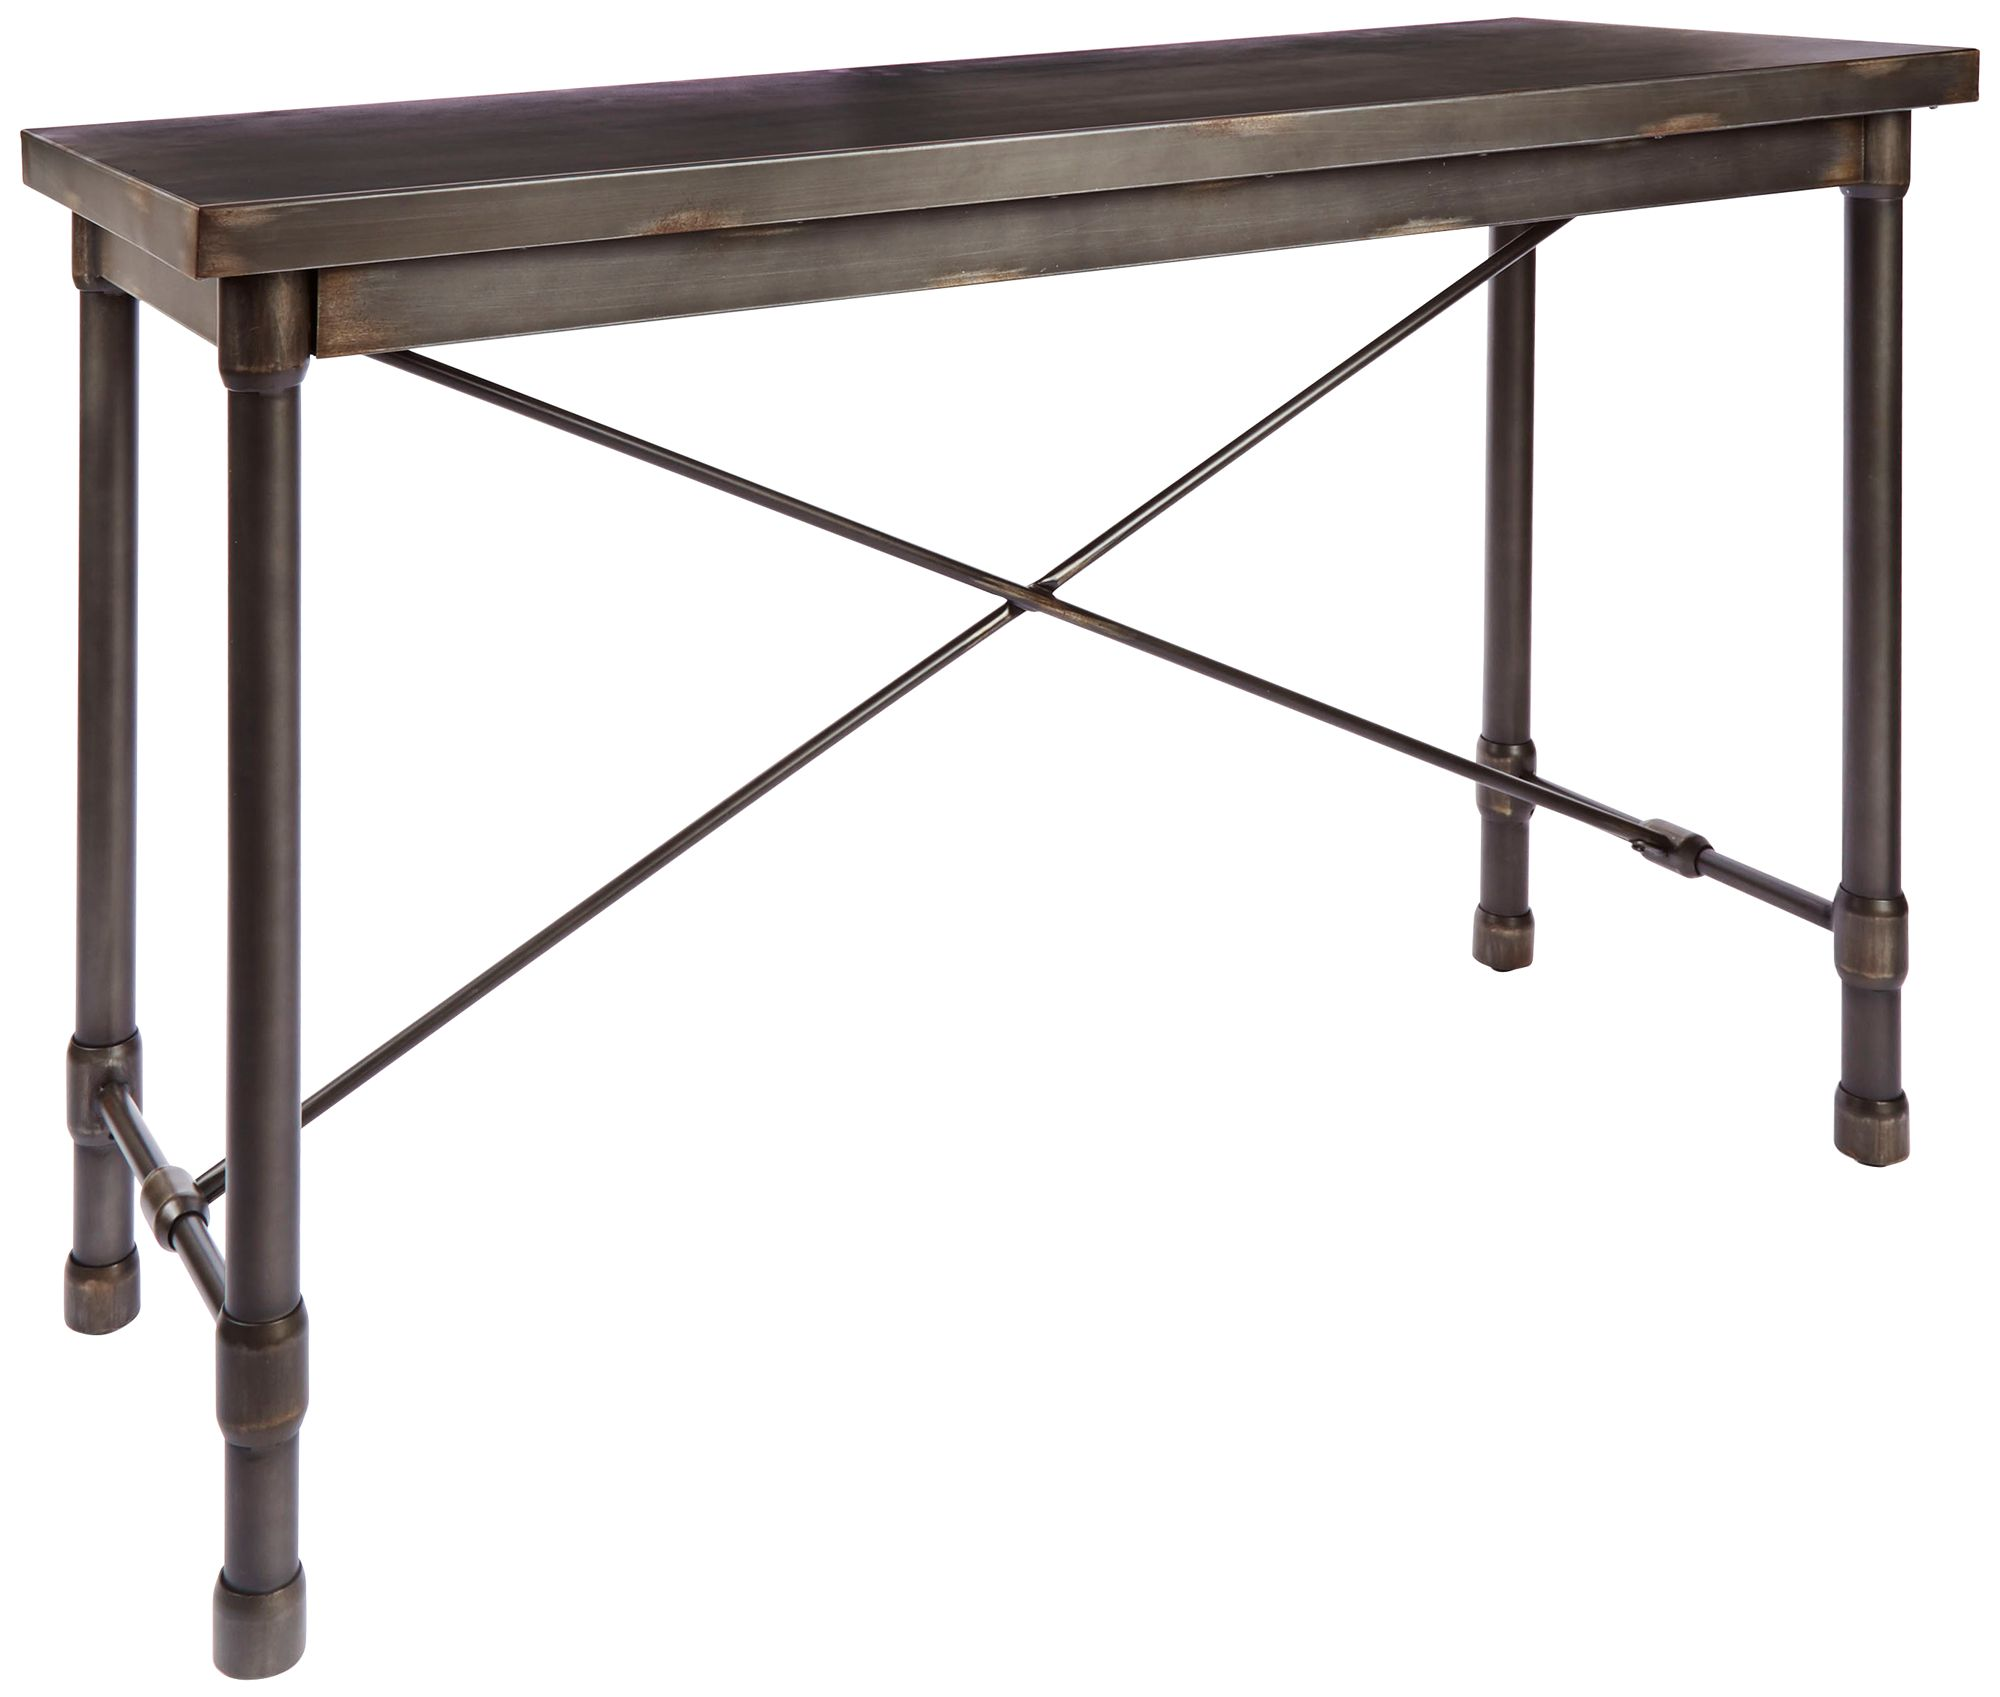 Charmant Oxford Industrial Bronzed Pewter Metal Console Table